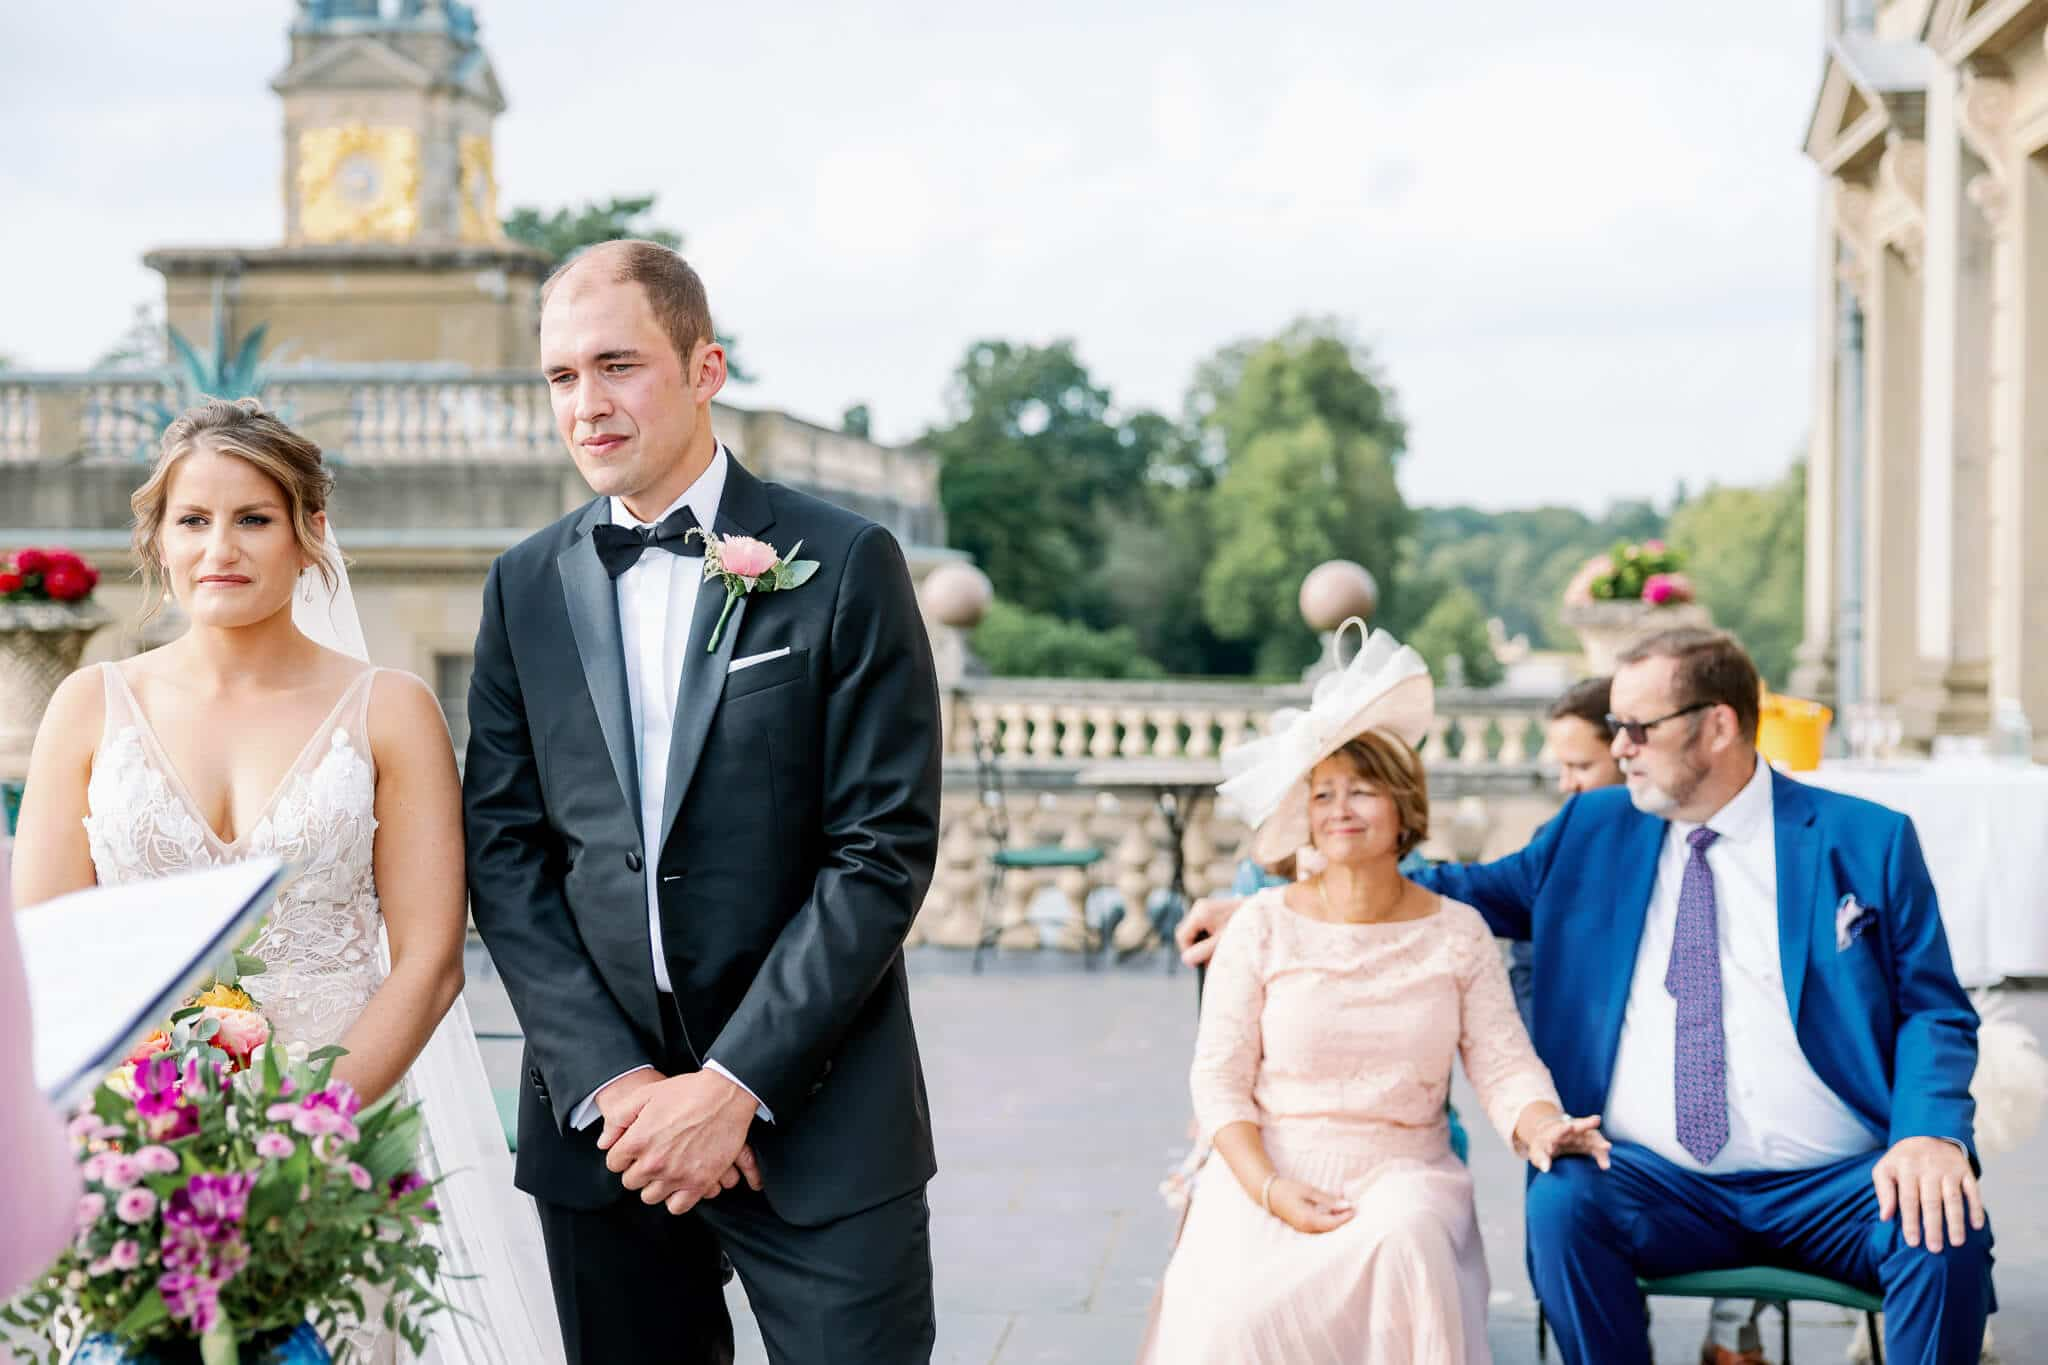 Terrace outdoor ceremony at Cliveden House wedding